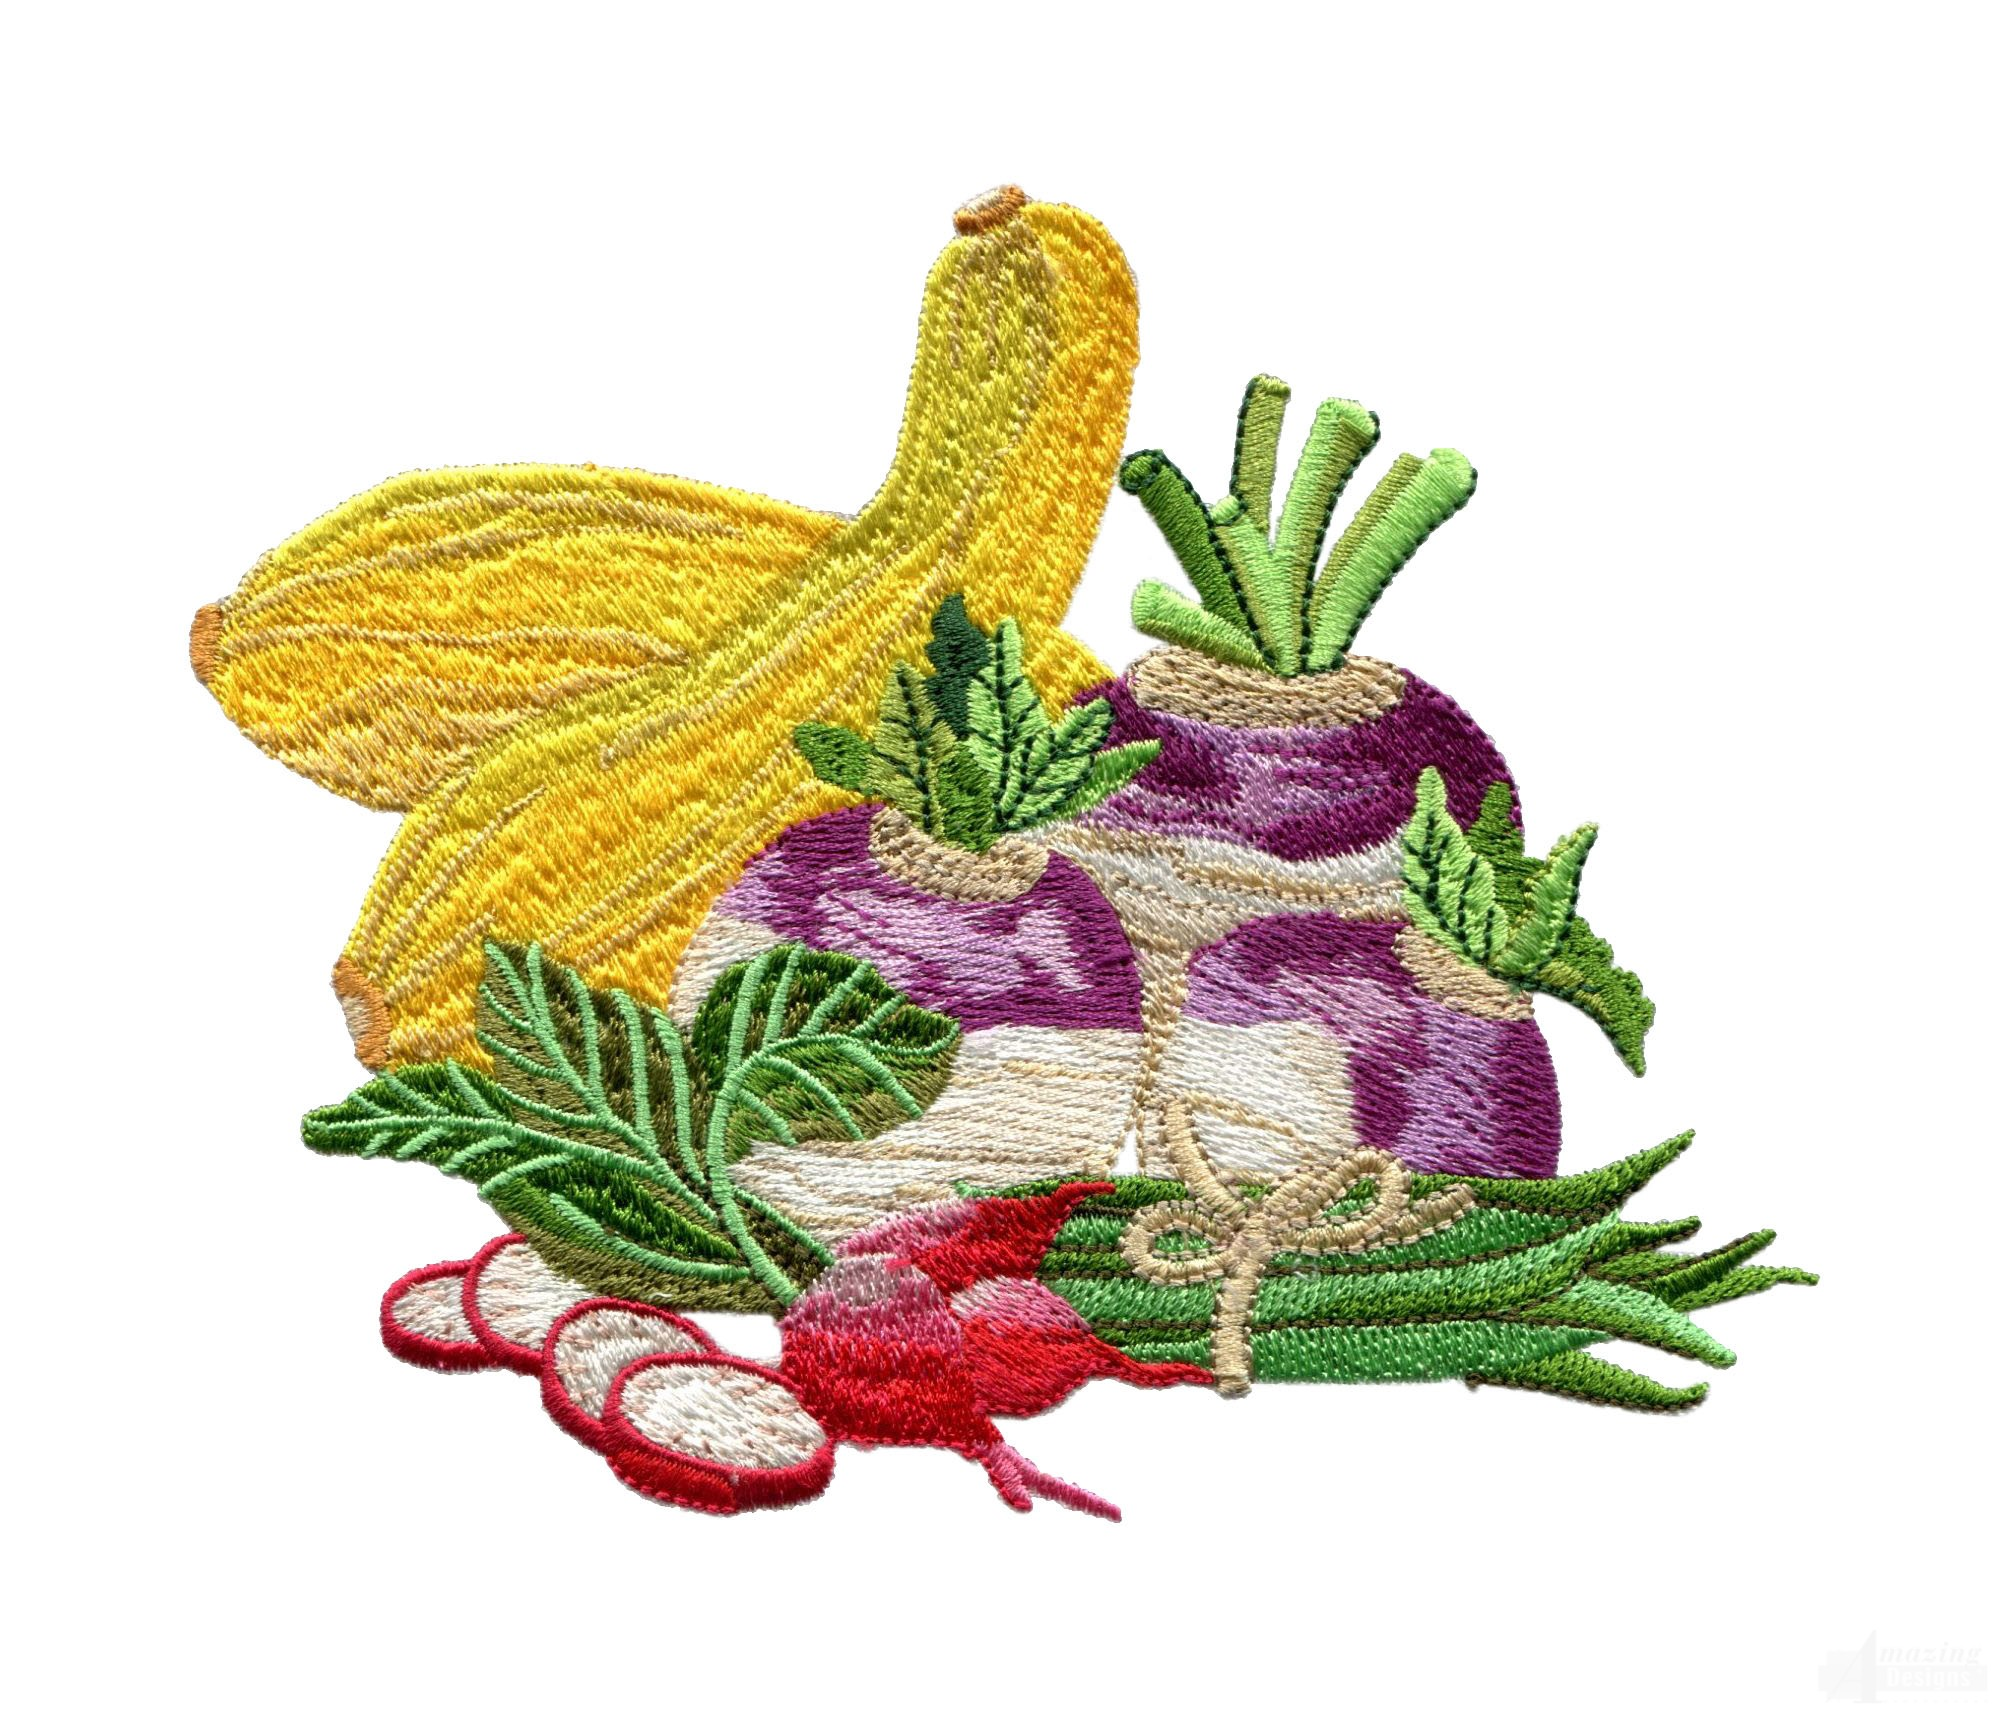 Garden assortment 8 embroidery design for Garden embroidery designs free